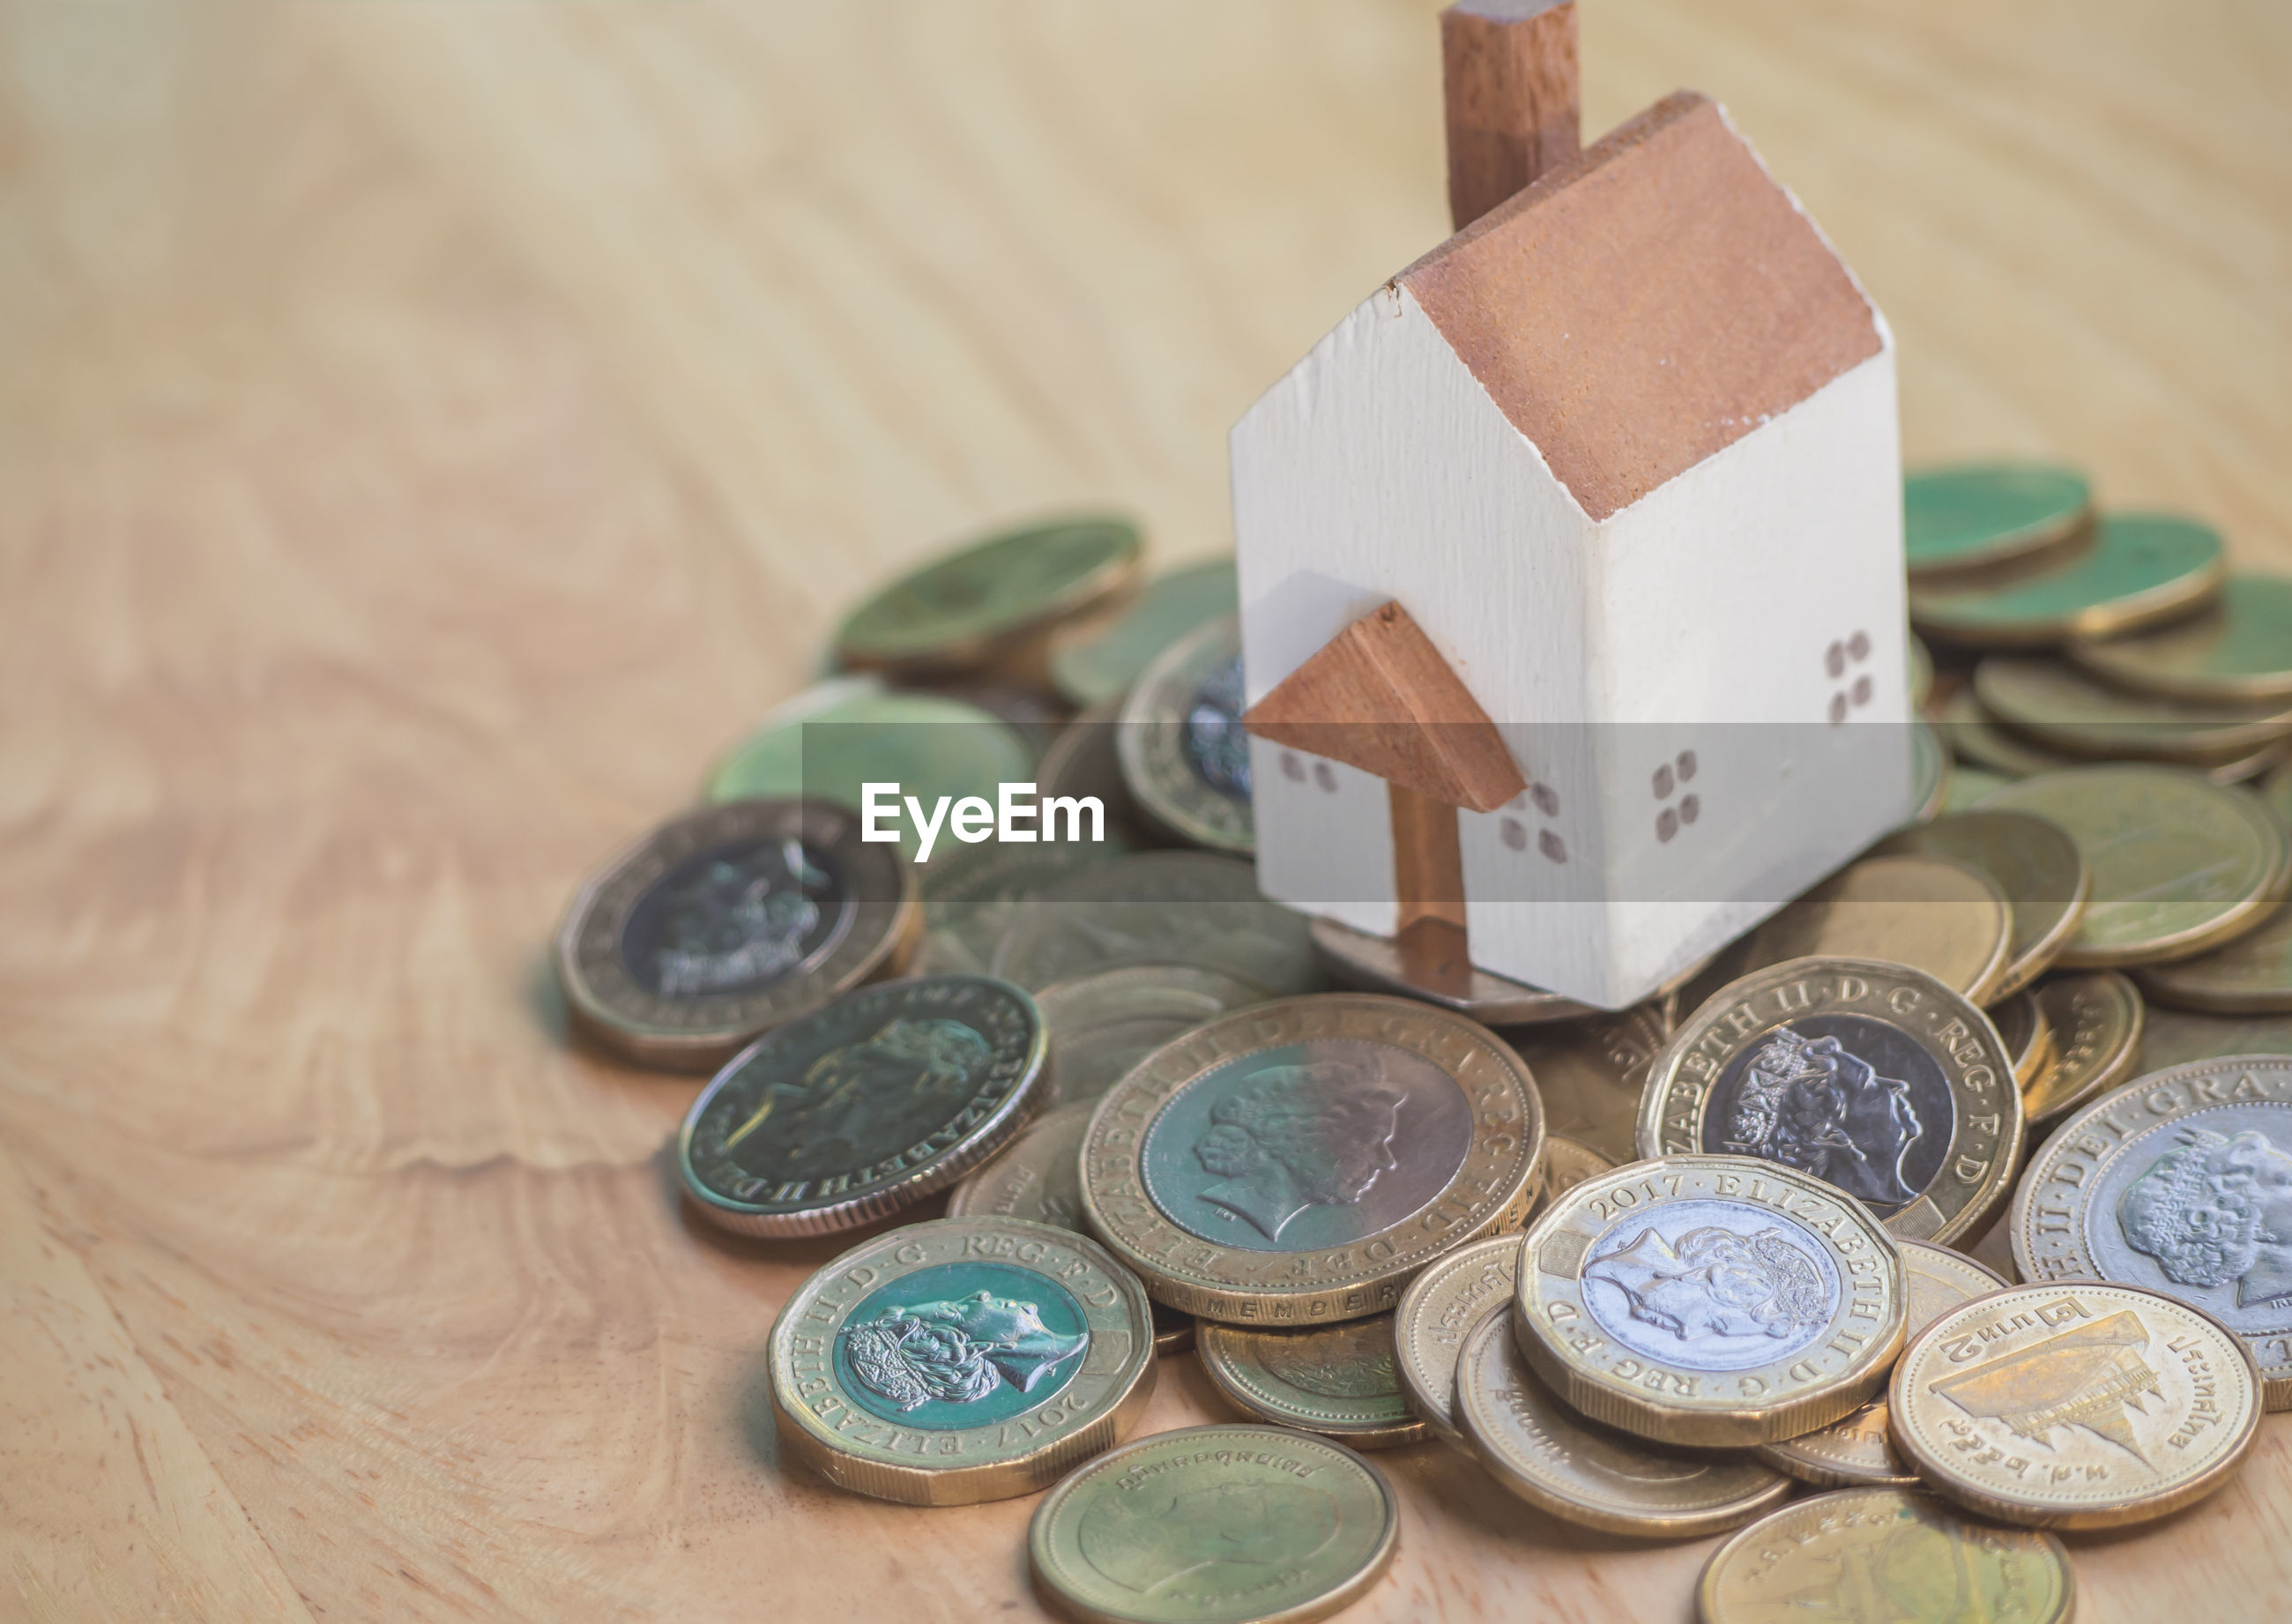 Close-up of coins and toy home on table